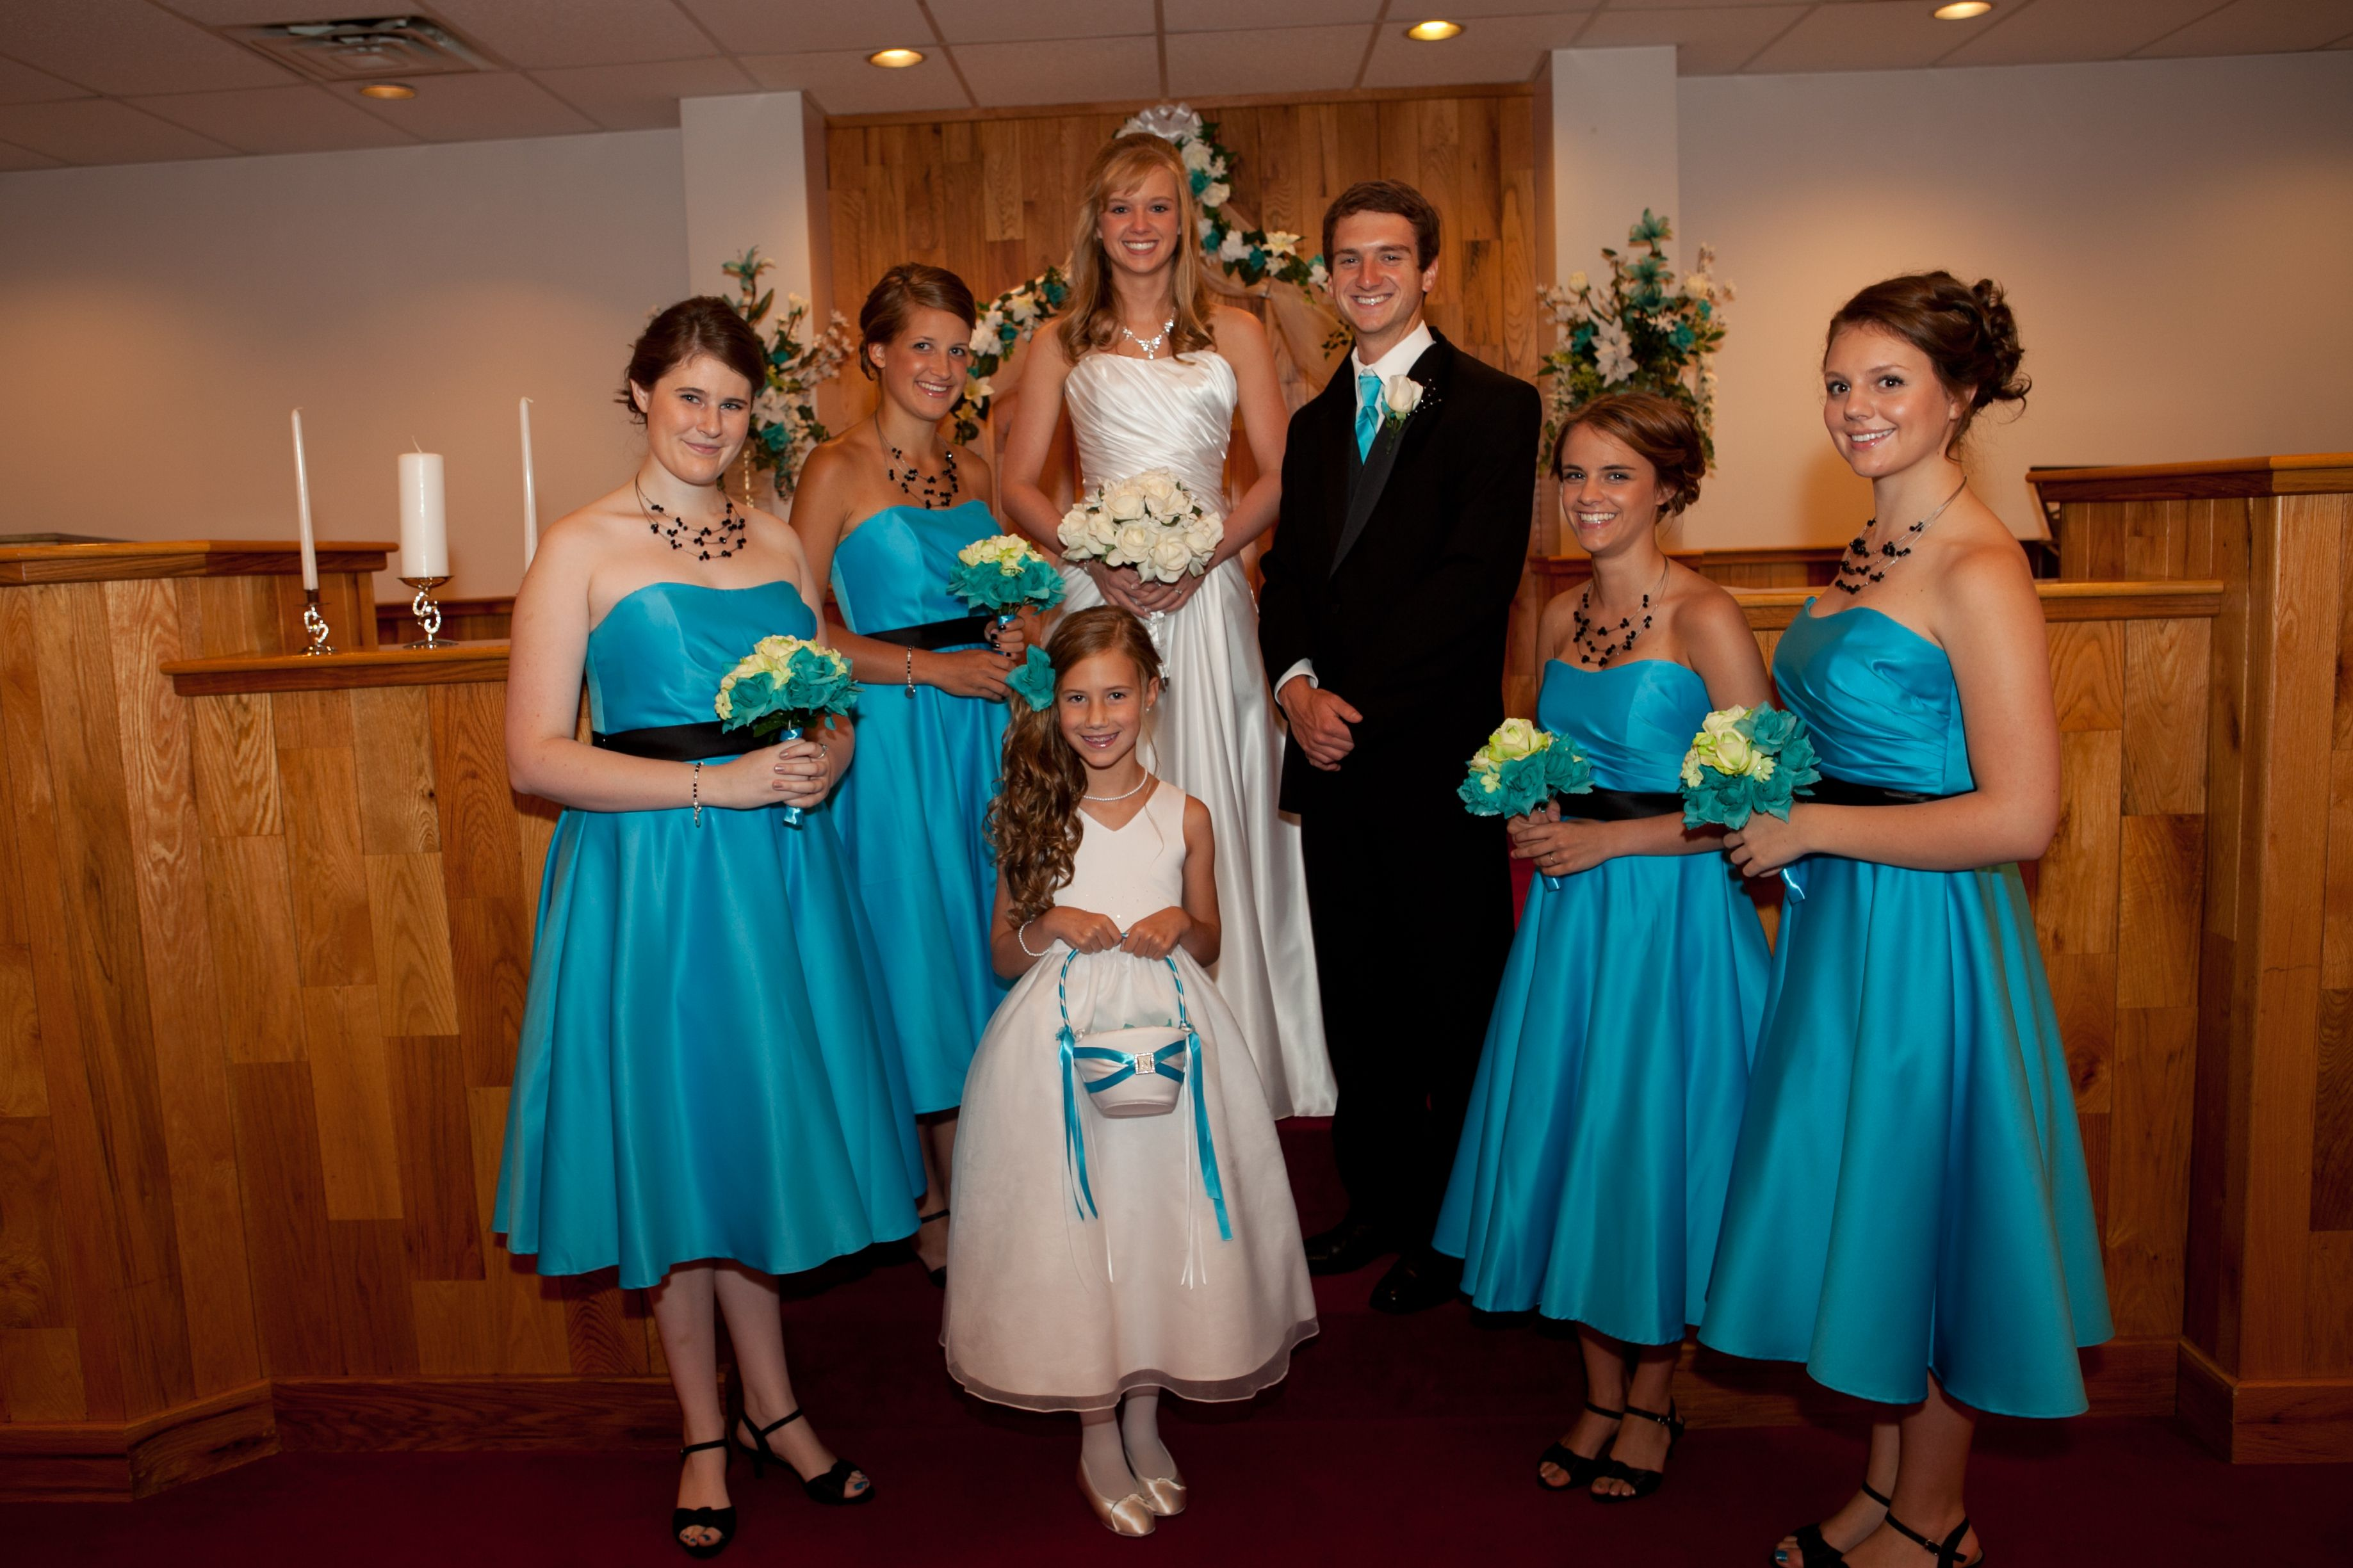 Wedding photography pictures bridesmaids turquoise and black wedding photography pictures bridesmaids turquoise and black bridesmaid dresses lime green flowers bouquets flower girl ombrellifo Image collections